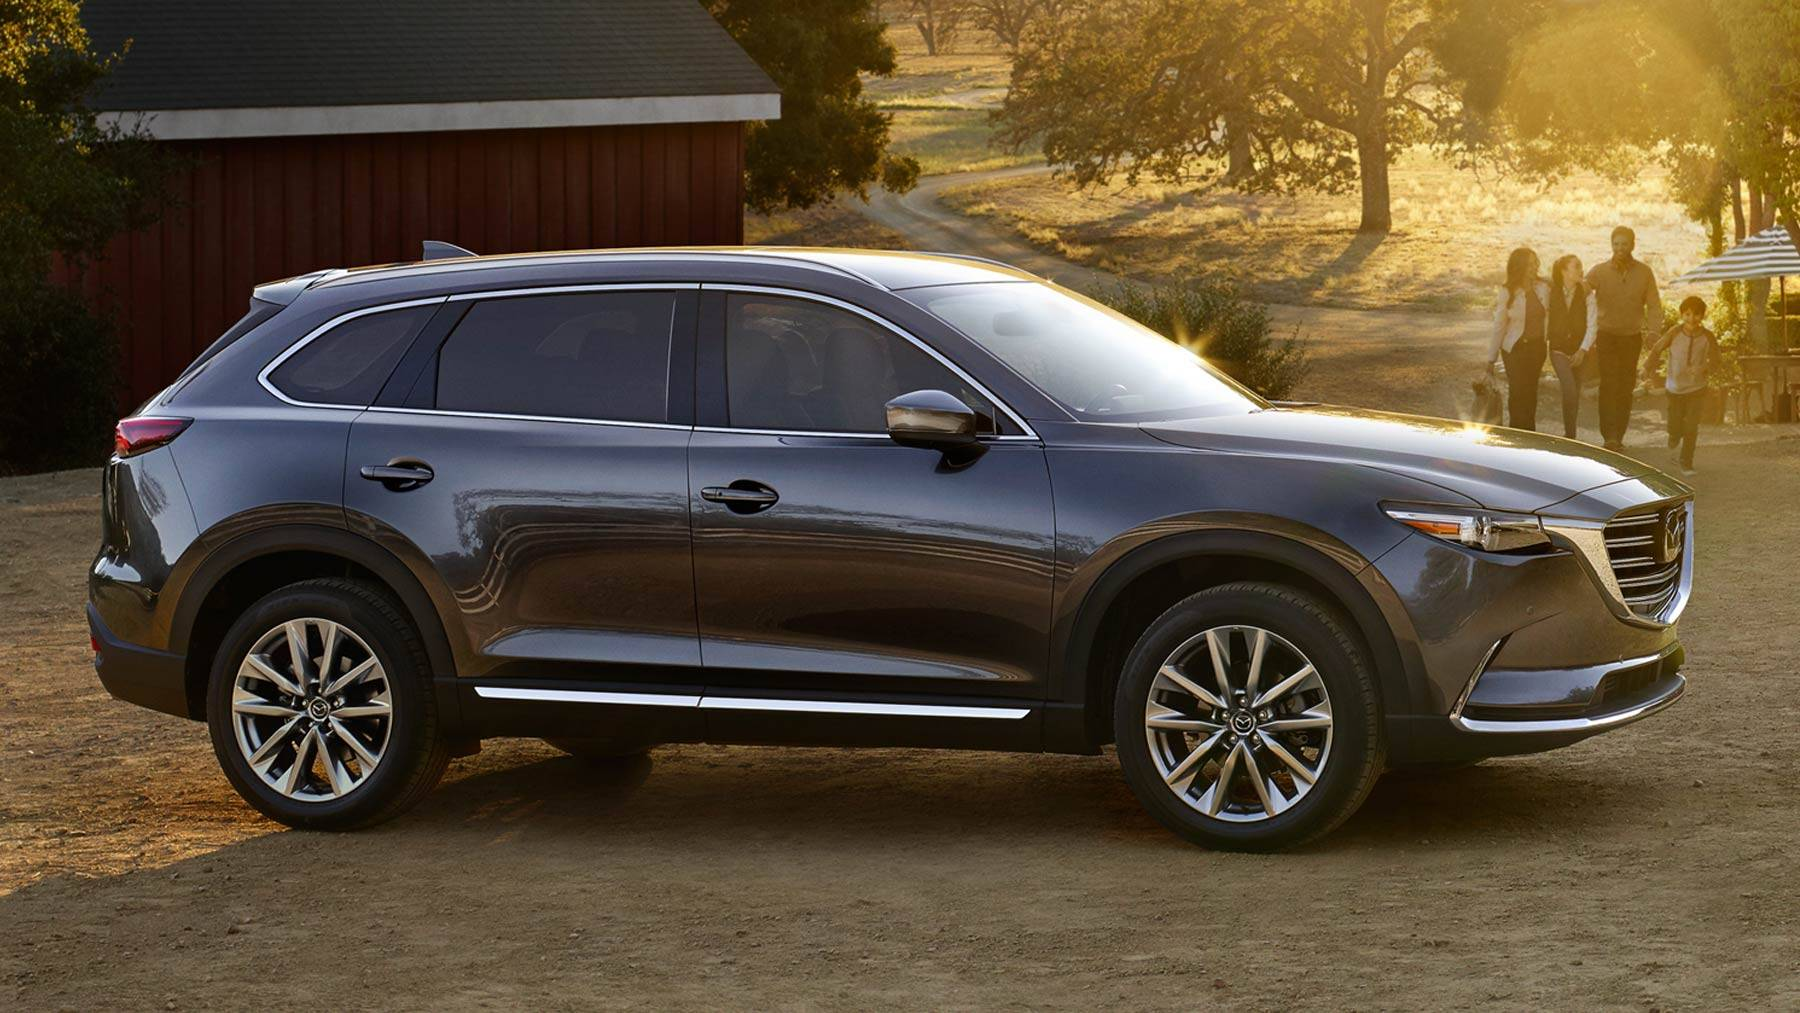 2018 Mazda CX-9 for Sale in Sacramento, CA